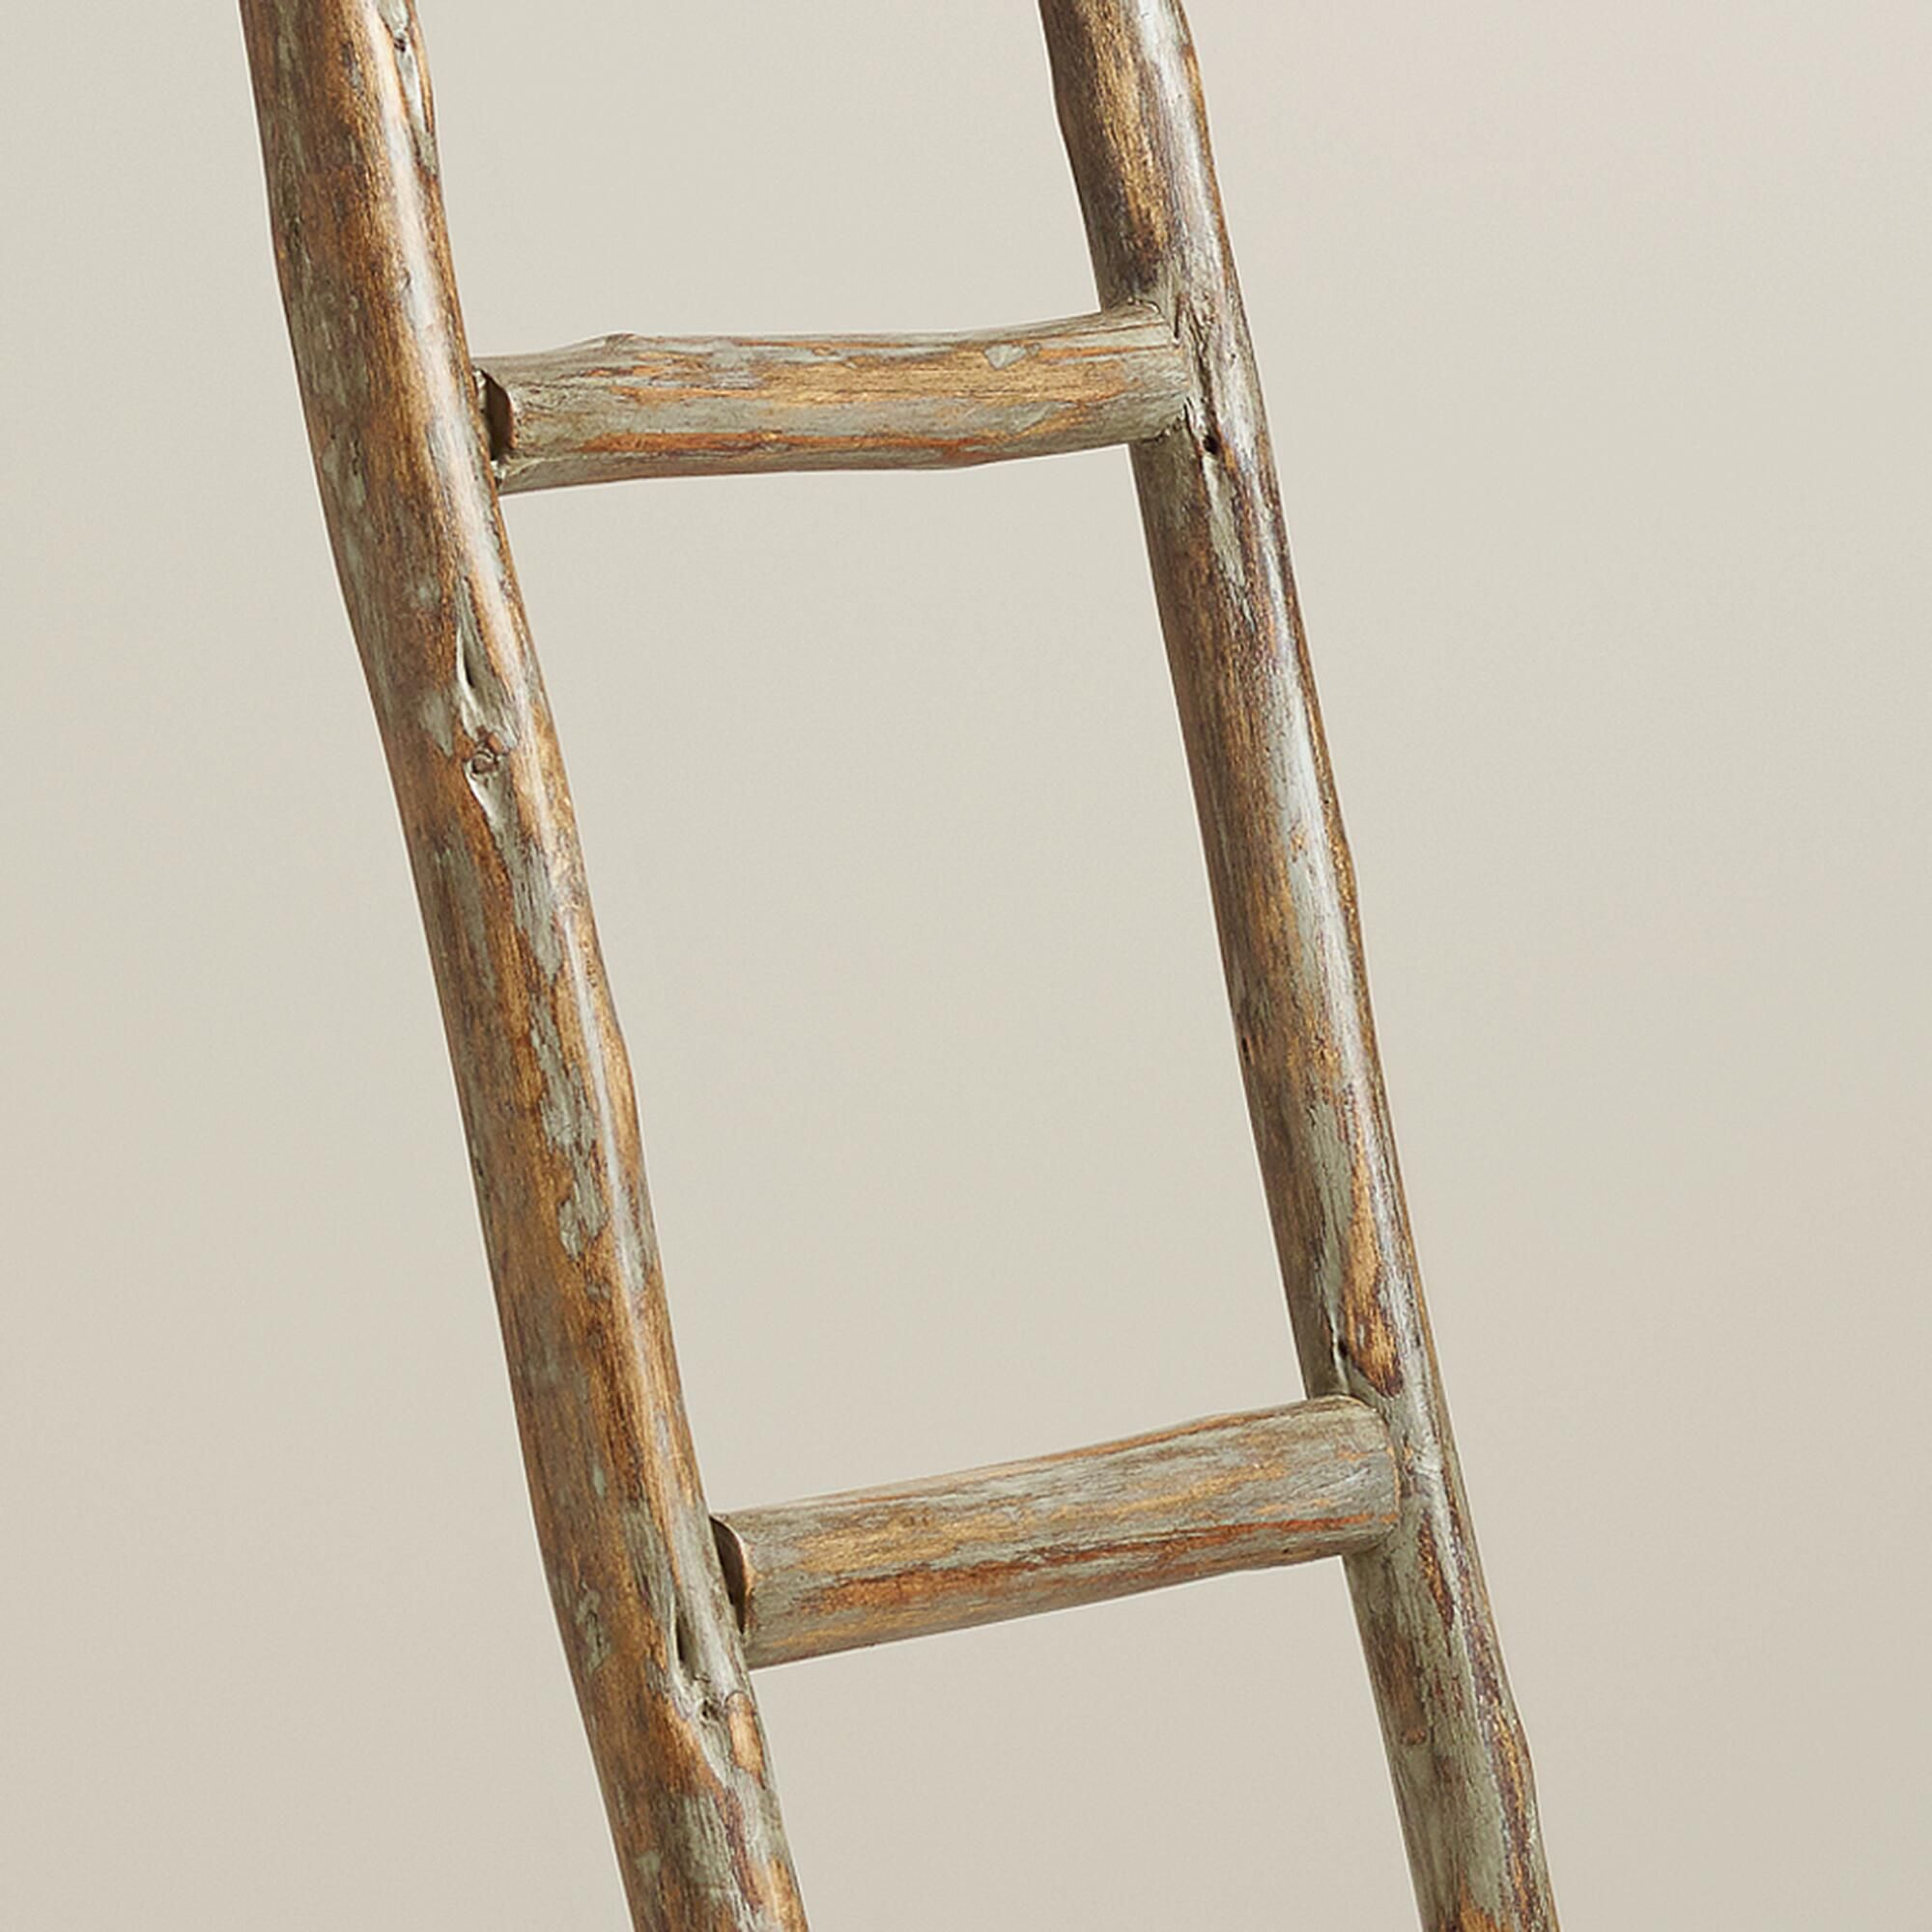 Crafted of wood this decorative ladder adds interest to any room